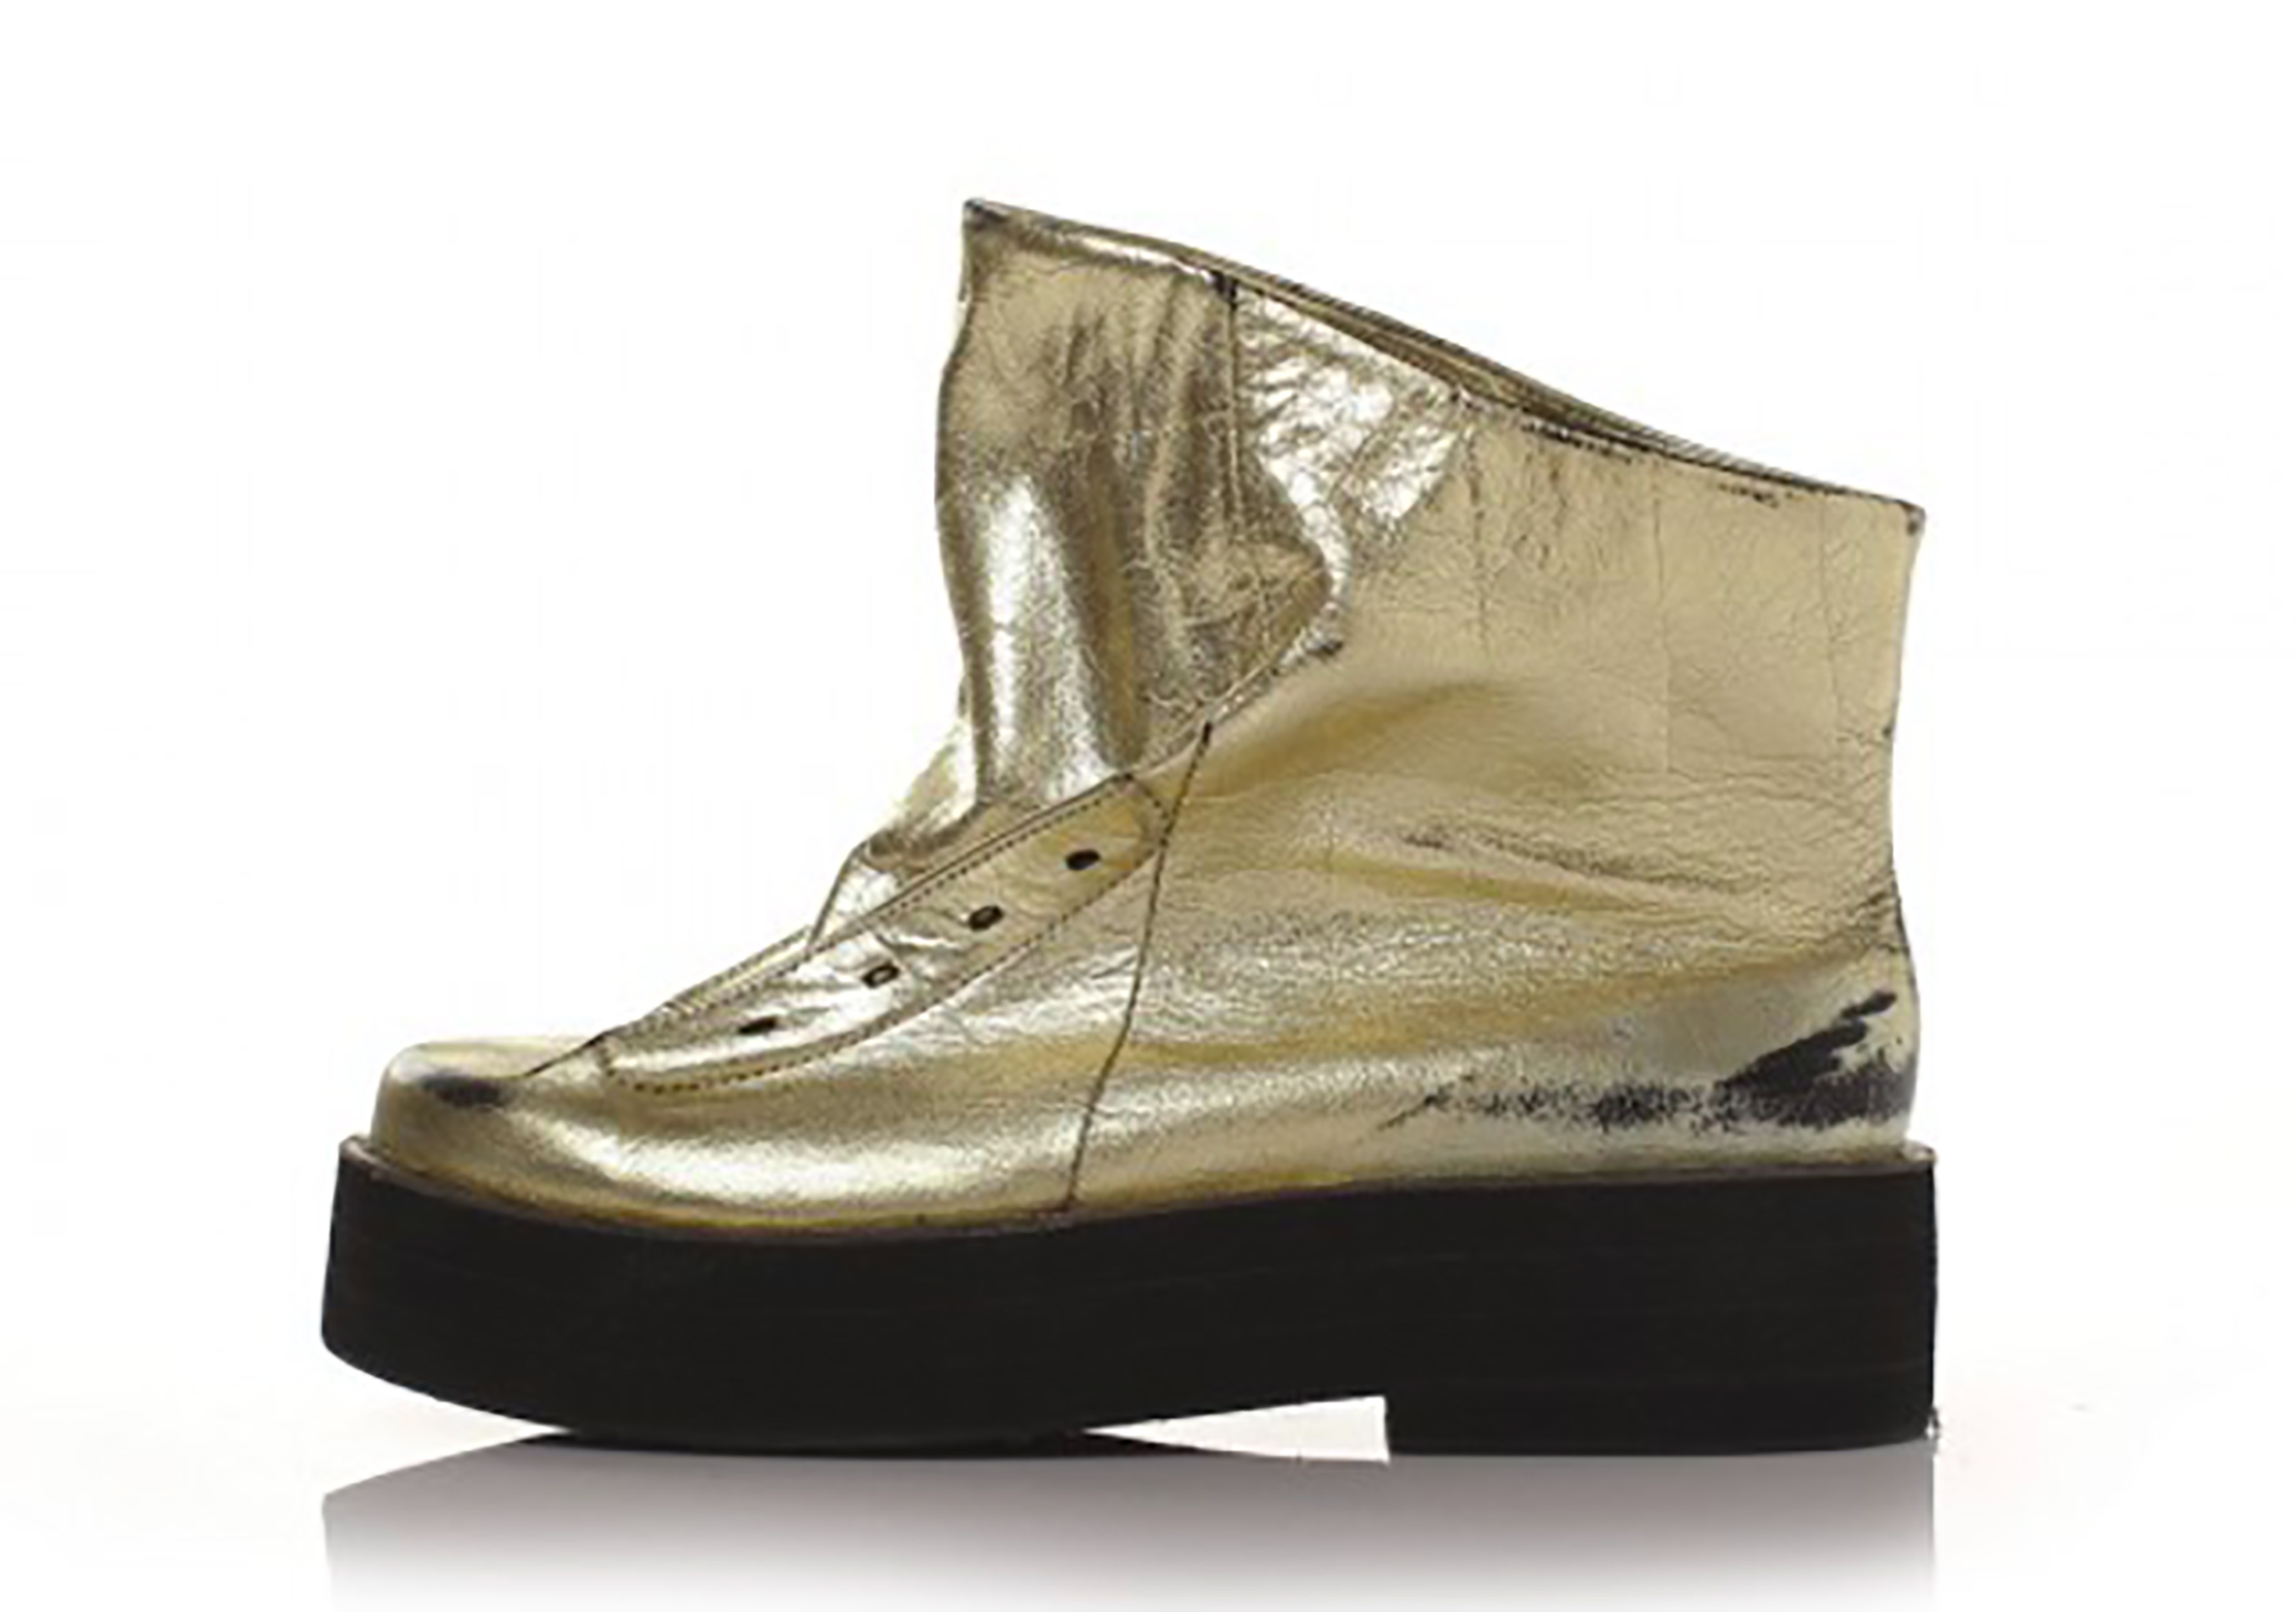 - Boots Pora Gold by Void Shoes.Fun Fact:Void Shoesspecializes in hand-crafted shoes made in Italy and Russia. They use the finest quality leather.https://voidshoes.com/en/onlajn-magazin/botinki/botinki-pora-goldInstagram:@voidshoes